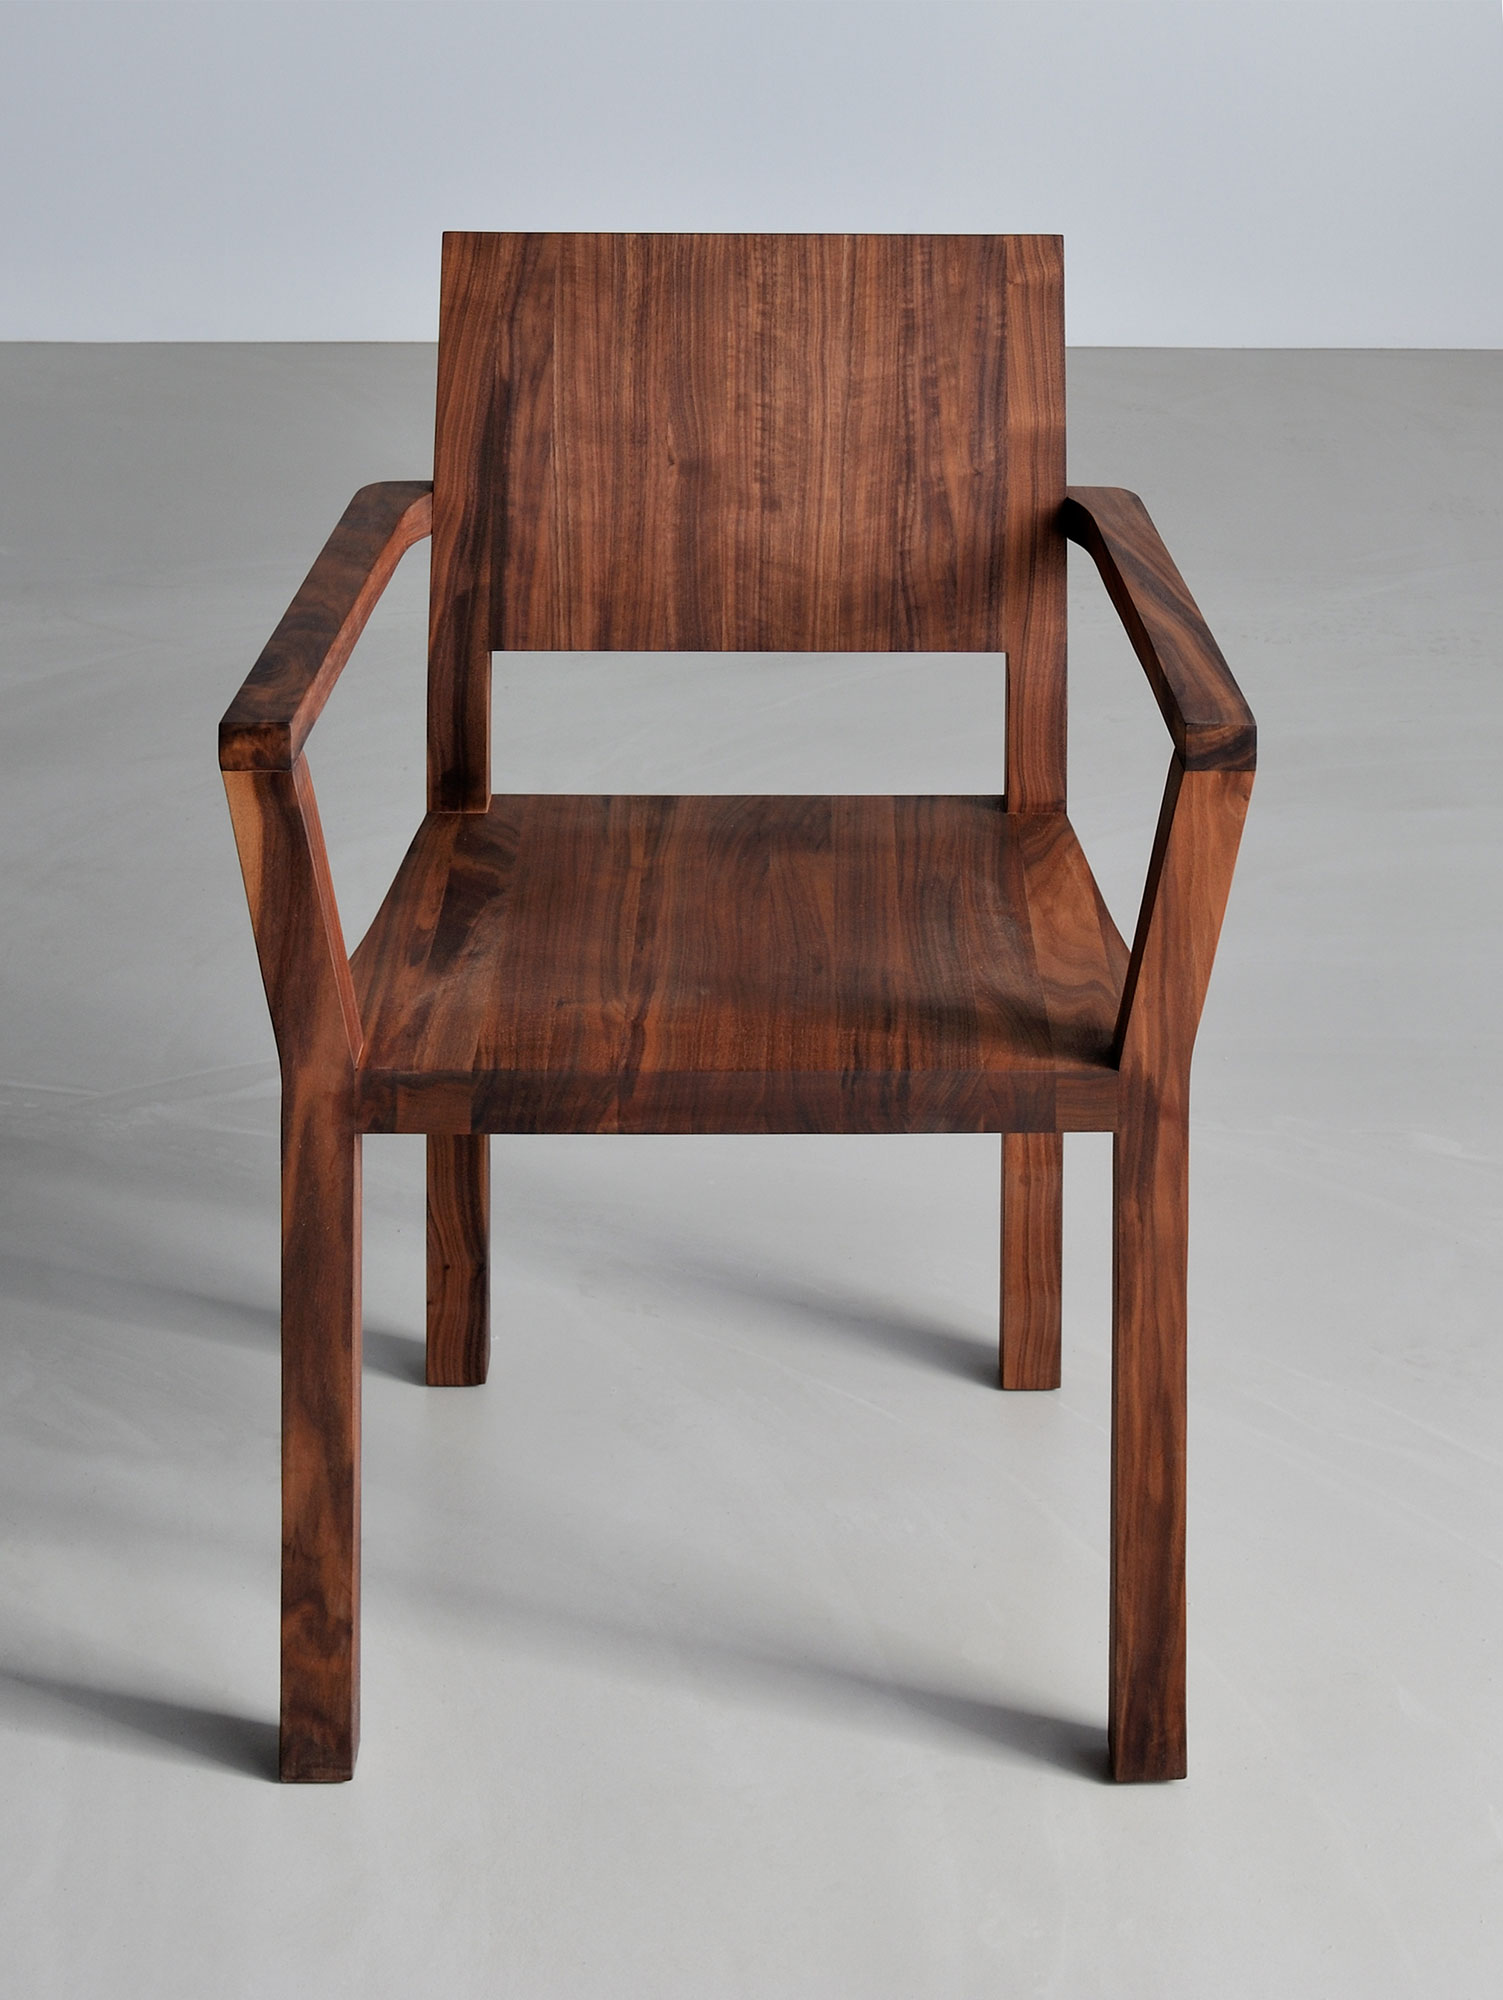 Solid Wood Armchair TAU-A 3328a custom made in solid wood by vitamin design